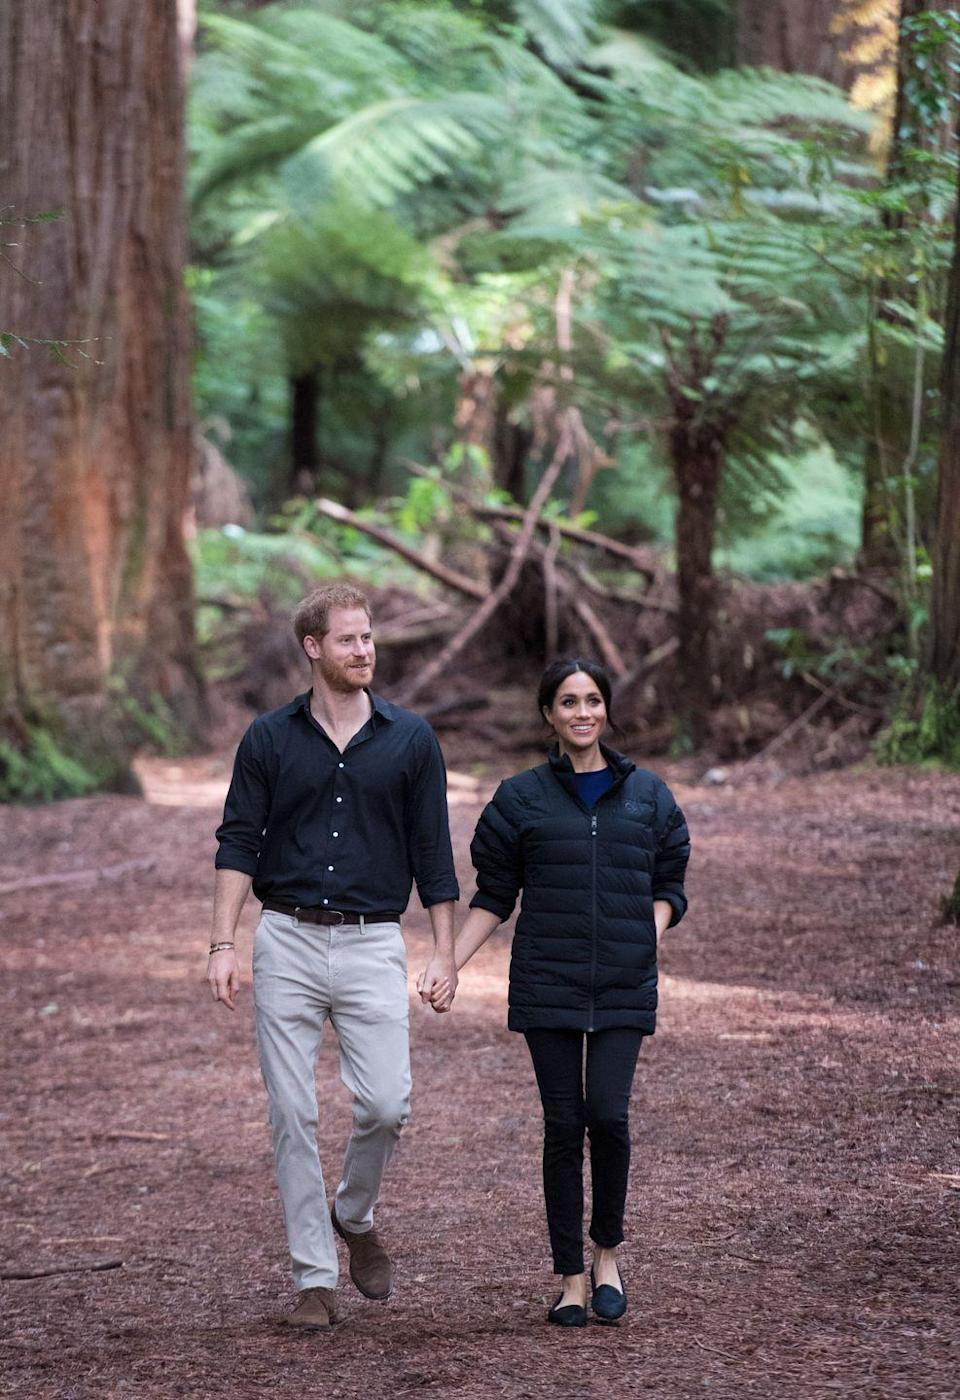 "<p>On their last day in New Zealand, Harry and Meghan visited the Redwoods Treewalk in Rotorua. the Duchess wore black jeans by Mother Denim with a navy sweater and black puffer jacket by Norrøna, <a href=""https://www.townandcountrymag.com/style/fashion-trends/a24474703/meghan-markle-prince-harry-jacket-final-day-royal-tour-outfit-new-zealand-photo/"" rel=""nofollow noopener"" target=""_blank"" data-ylk=""slk:which she borrowed from Prince Harry"" class=""link rapid-noclick-resp"">which she borrowed from Prince Harry</a>. She also wore black flats by Birdies.</p><p><a class=""link rapid-noclick-resp"" href=""https://go.redirectingat.com?id=74968X1596630&url=https%3A%2F%2Fwww.shopbop.com%2Flooker-skinny-jeans-mother%2Fvp%2Fv%3D1%2F1534840640.htm&sref=https%3A%2F%2Fwww.townandcountrymag.com%2Fstyle%2Ffashion-trends%2Fg3272%2Fmeghan-markle-preppy-style%2F"" rel=""nofollow noopener"" target=""_blank"" data-ylk=""slk:SHOP NOW"">SHOP NOW</a> <em>Skinny Jeans by MOTHER Denim, $196</em></p><p><a class=""link rapid-noclick-resp"" href=""https://go.redirectingat.com?id=74968X1596630&url=https%3A%2F%2Fwww.altitude-sports.com%2Fproducts%2Fnorrona-mens-oslo-lightweight-down850-jacket-llll-nor-4821-18&sref=https%3A%2F%2Fwww.townandcountrymag.com%2Fstyle%2Ffashion-trends%2Fg3272%2Fmeghan-markle-preppy-style%2F"" rel=""nofollow noopener"" target=""_blank"" data-ylk=""slk:SHOP NOW"">SHOP NOW</a> <em>Norrøna Puffer Jacket, $486</em></p>"